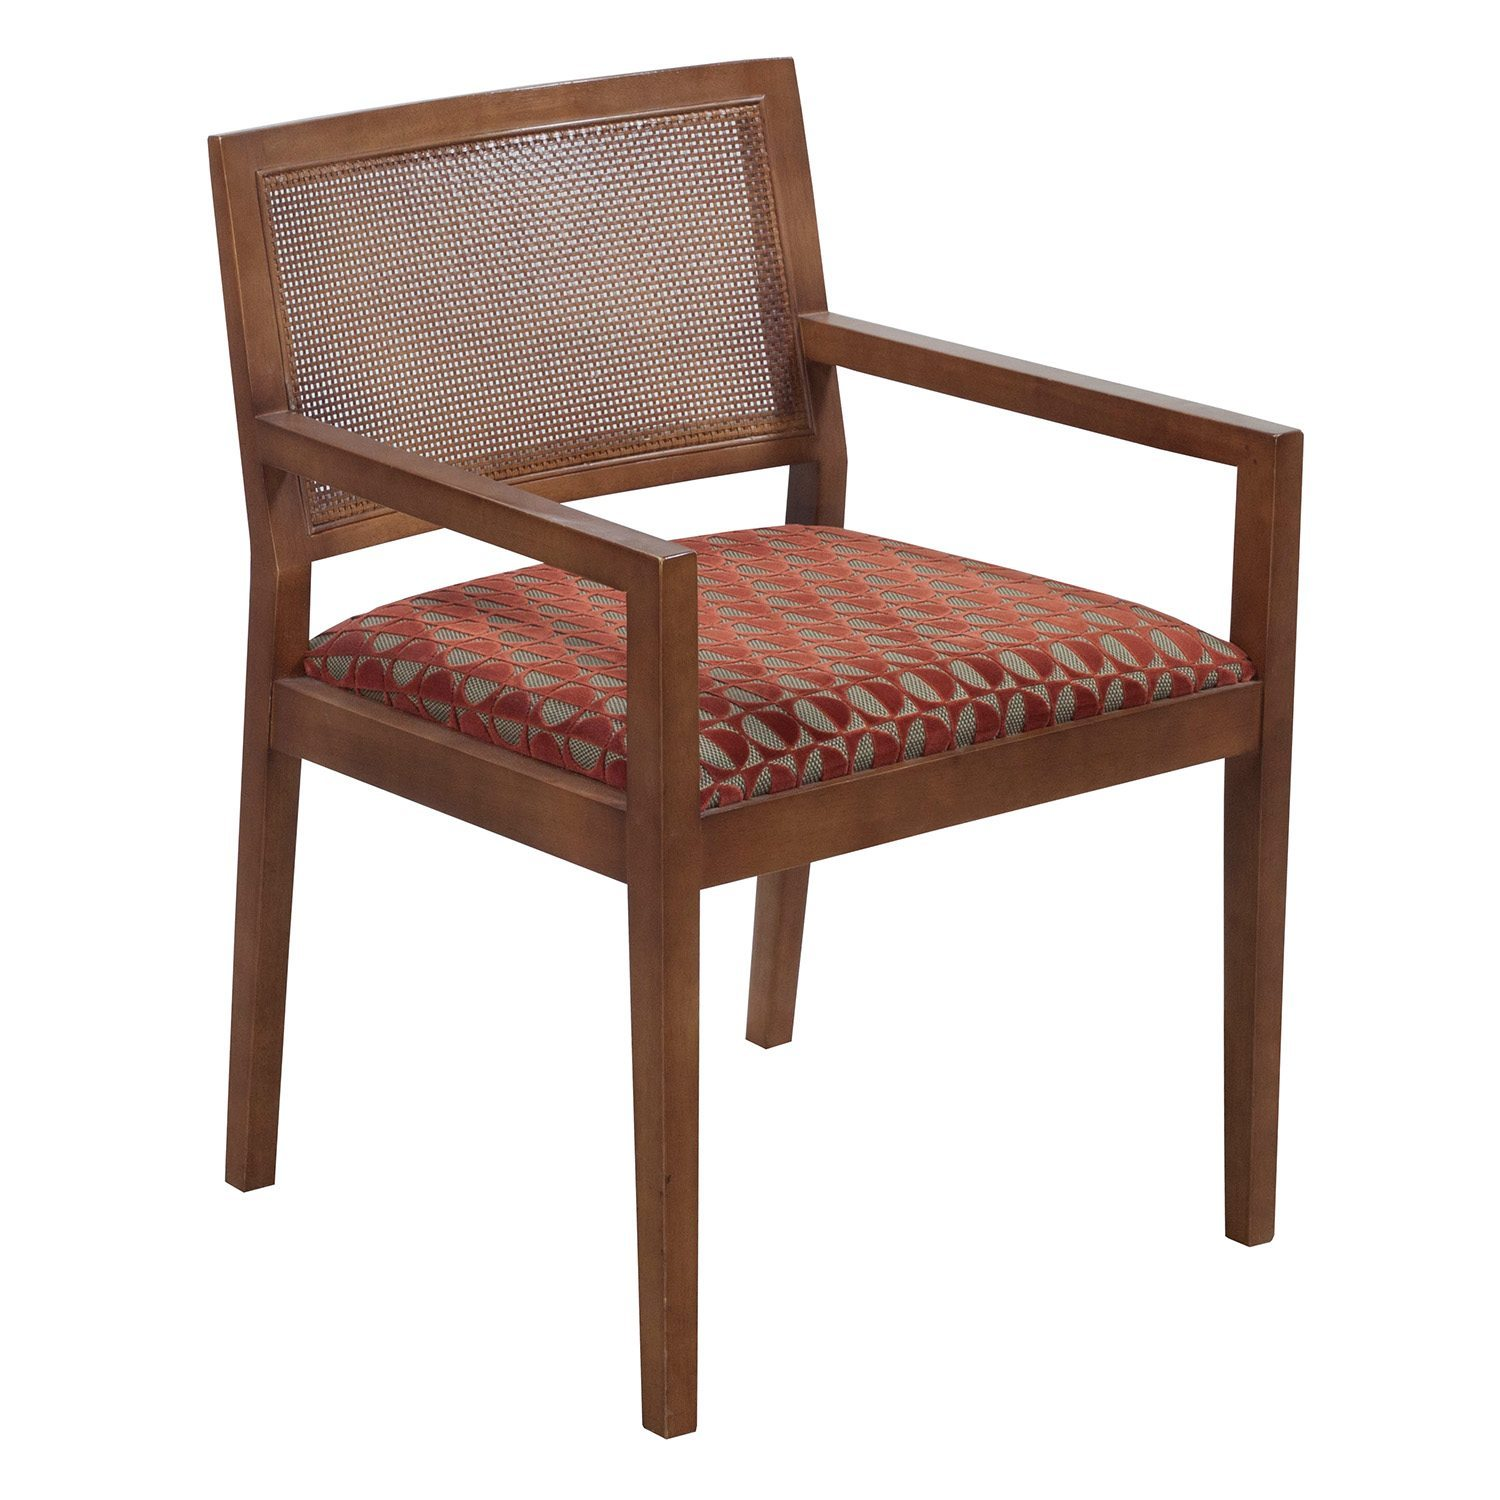 Wooden Chairs With Arms Bernhardt Clark Used Wooden Arm Chair Cherry National